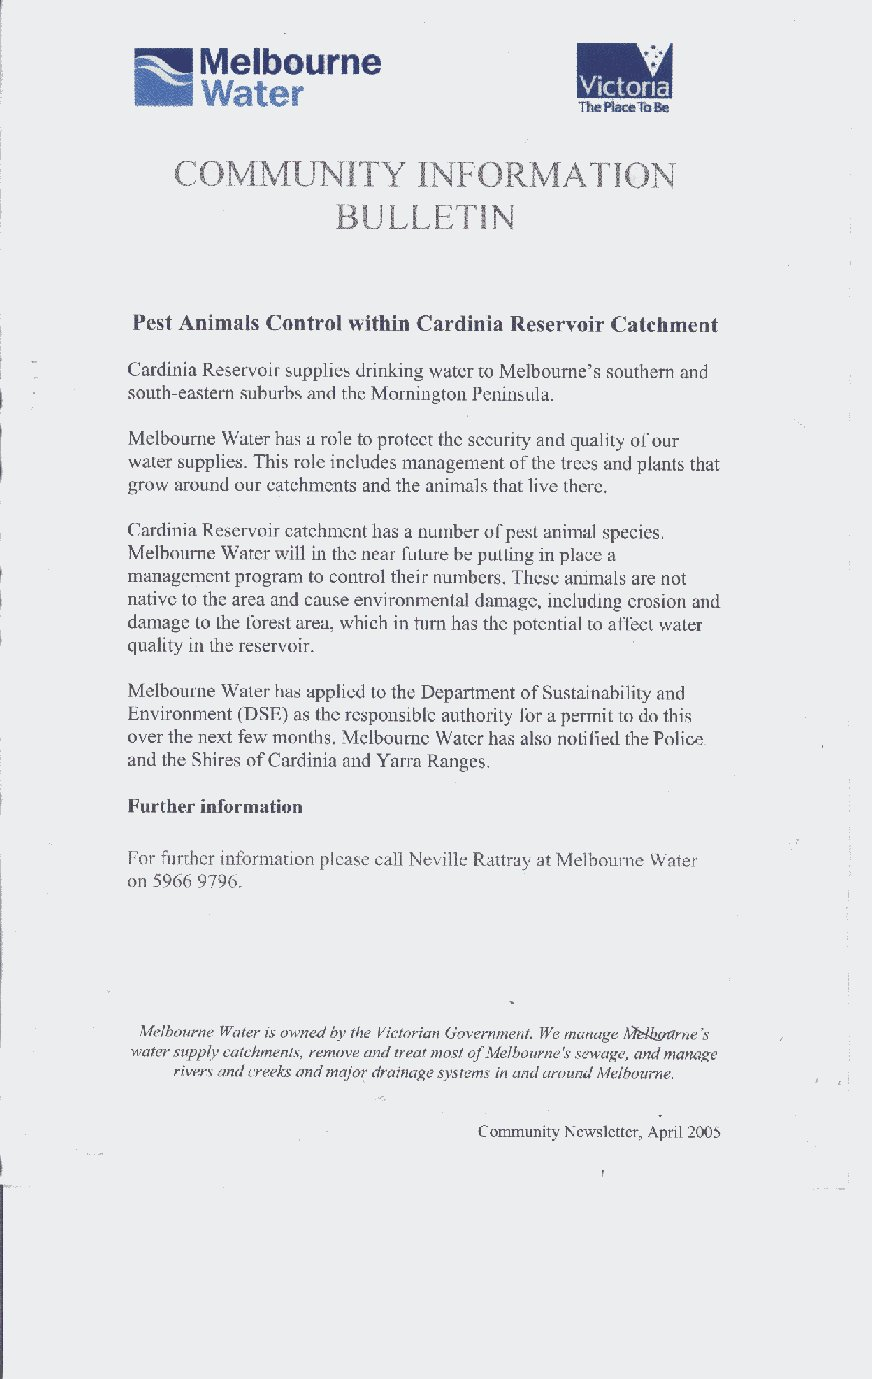 Emus cardinia reservoir save the emus at cardinia reservoir click here to view scanned image of the first communication from melbourne water spiritdancerdesigns Images